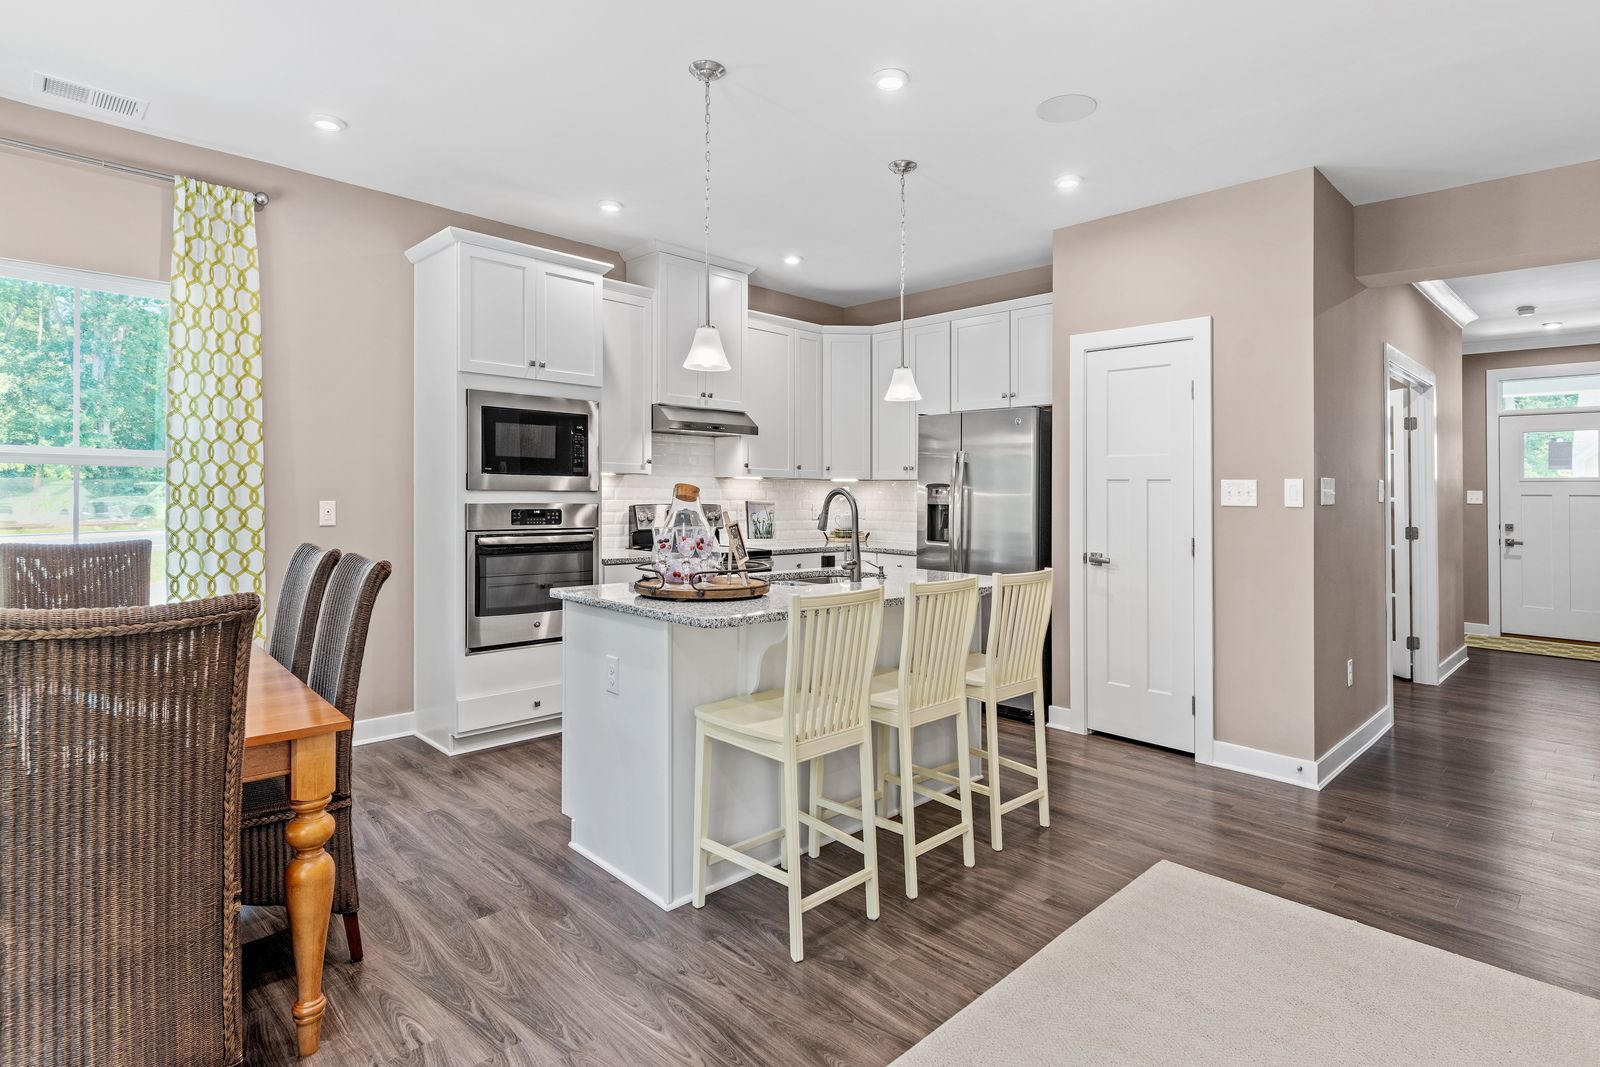 Kitchen featured in the Alberti 2 Story By Ryan Homes in Chicago, IL